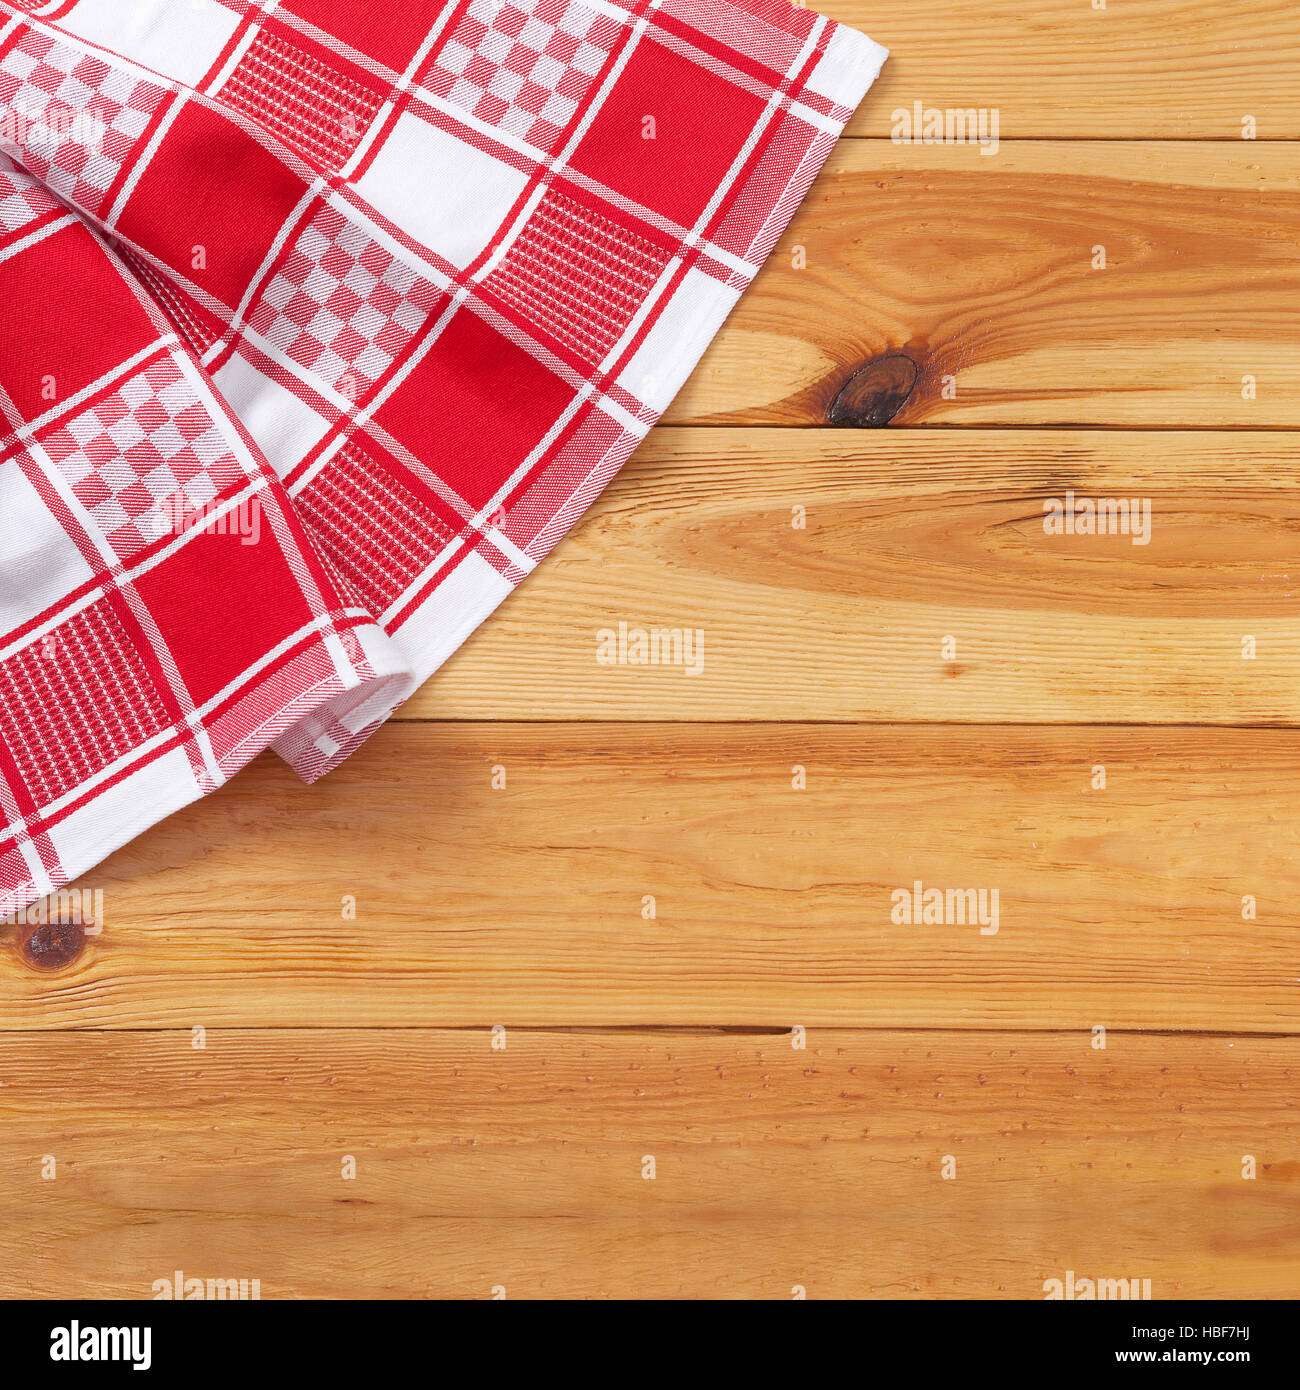 Red Tablecloth Over Wooden Table. Mockup Top View